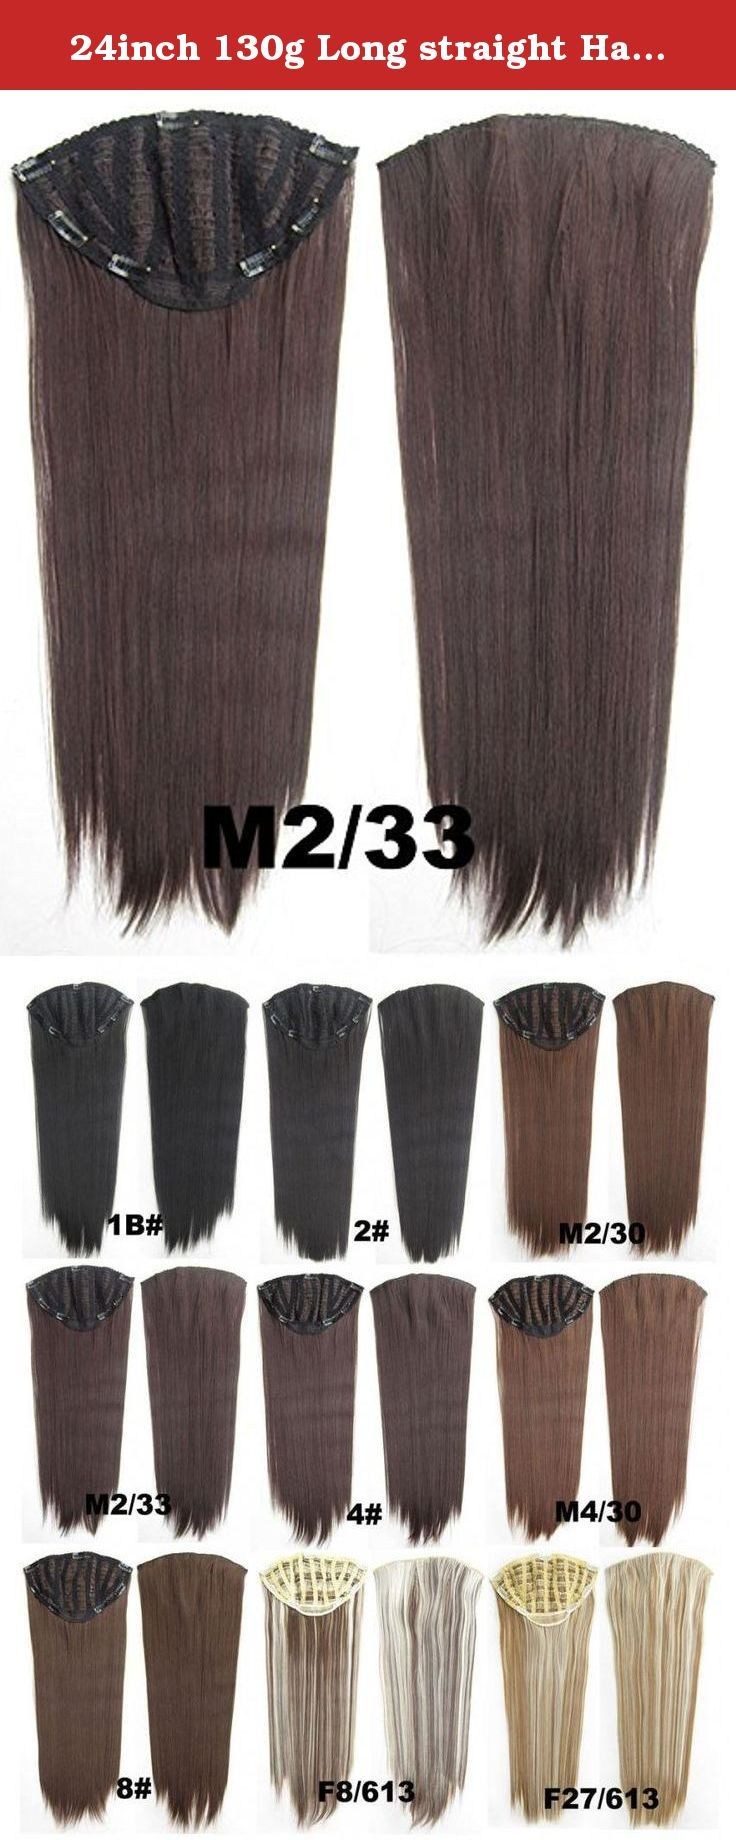 24inch 130g Long Straight Hair Extension Clip In Hair Extensions 7